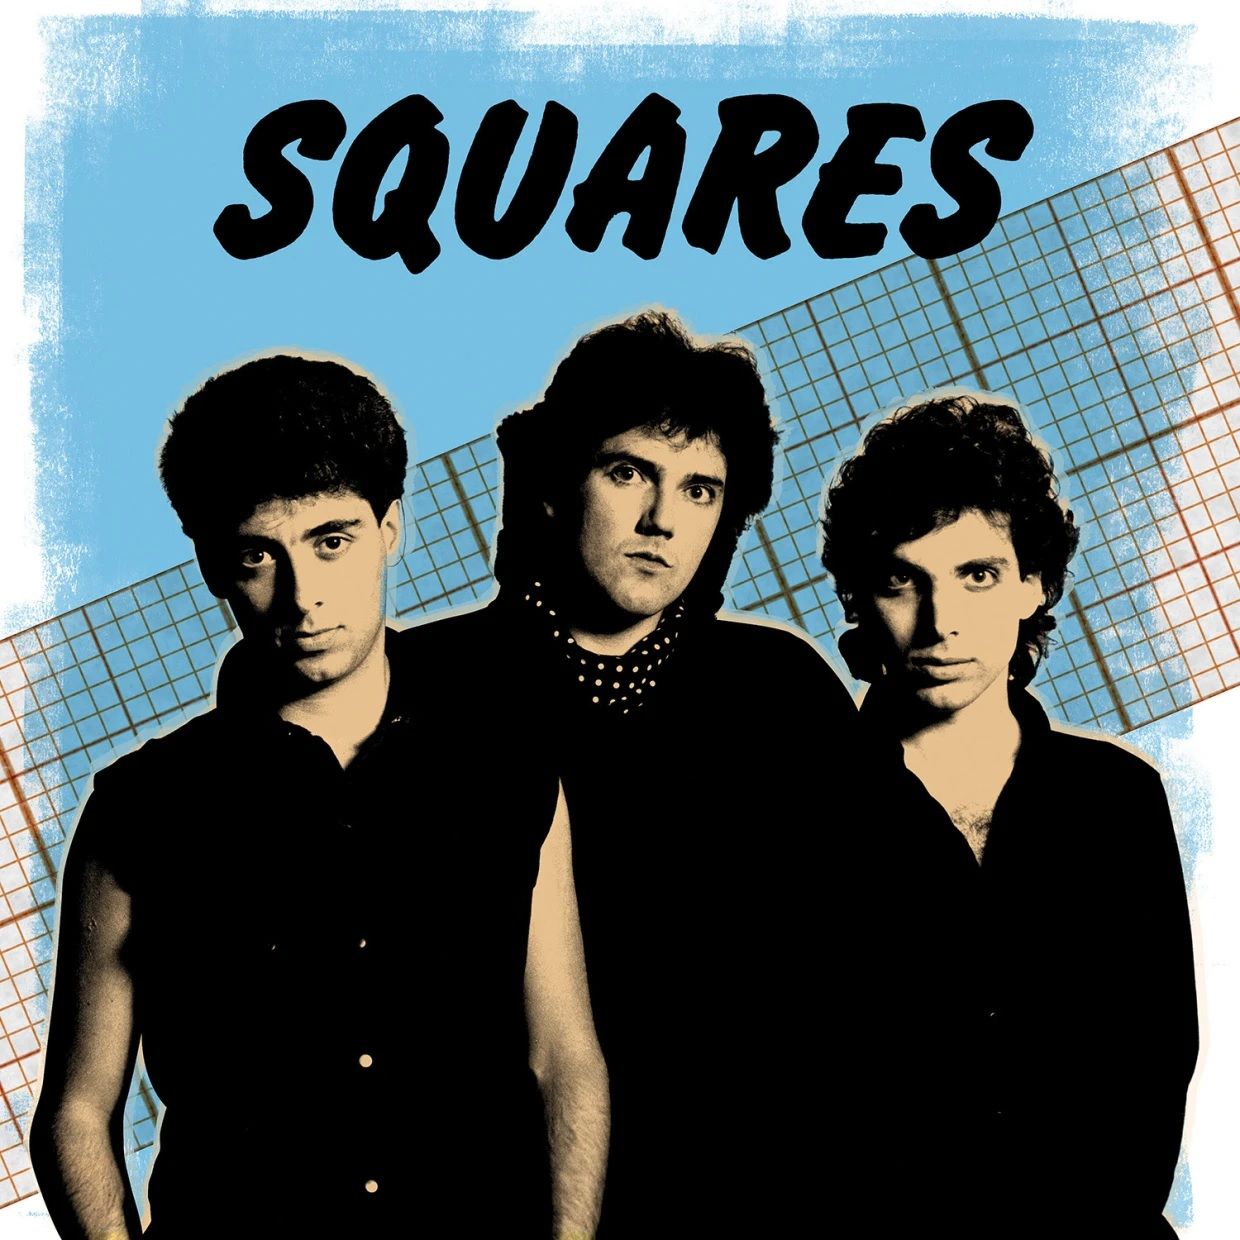 Joe Satriani - Squares - Album Cover